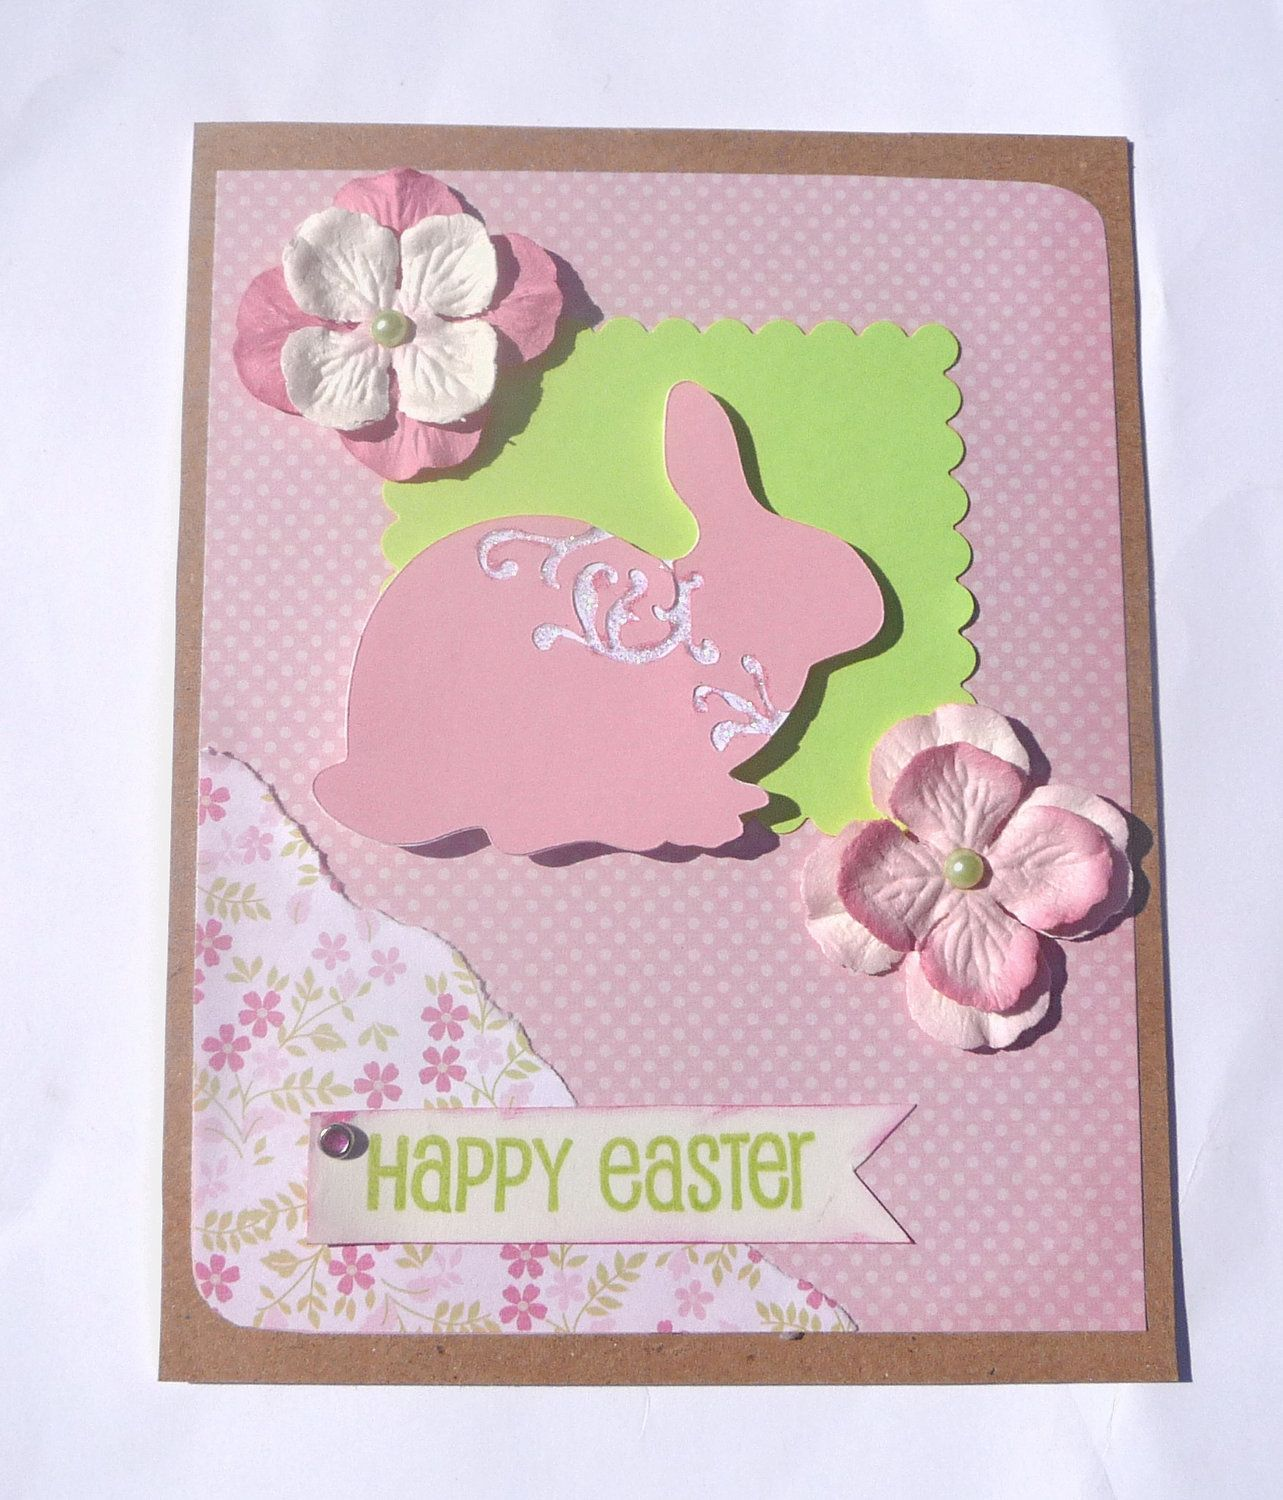 Happy Easter Shabby Chic Easter Greeting Card Via Etsy Cards